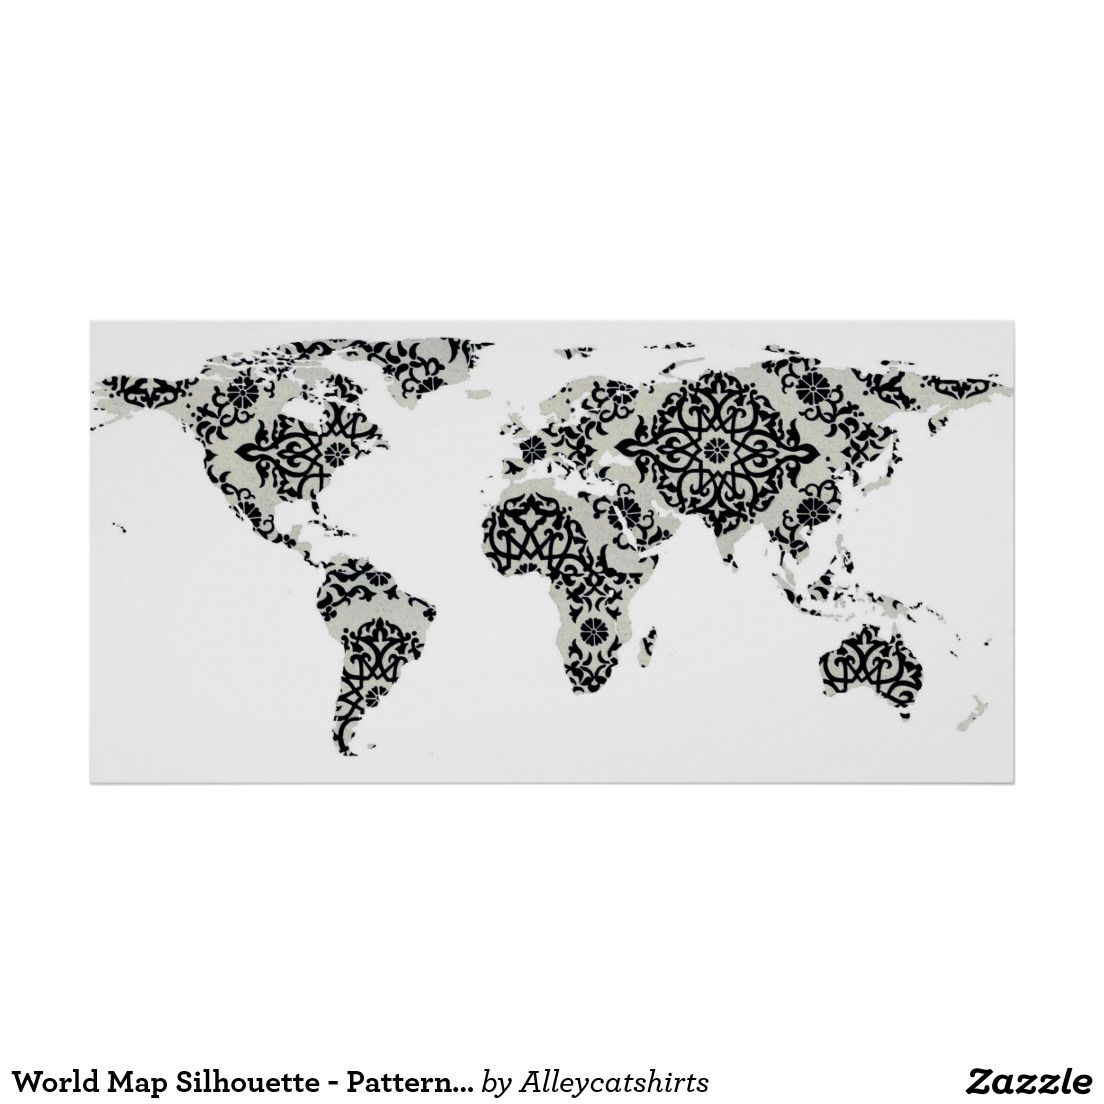 World map silhouette patterned mandala 02 white poster world map world map silhouette patterned mandala 02 white poster gumiabroncs Gallery